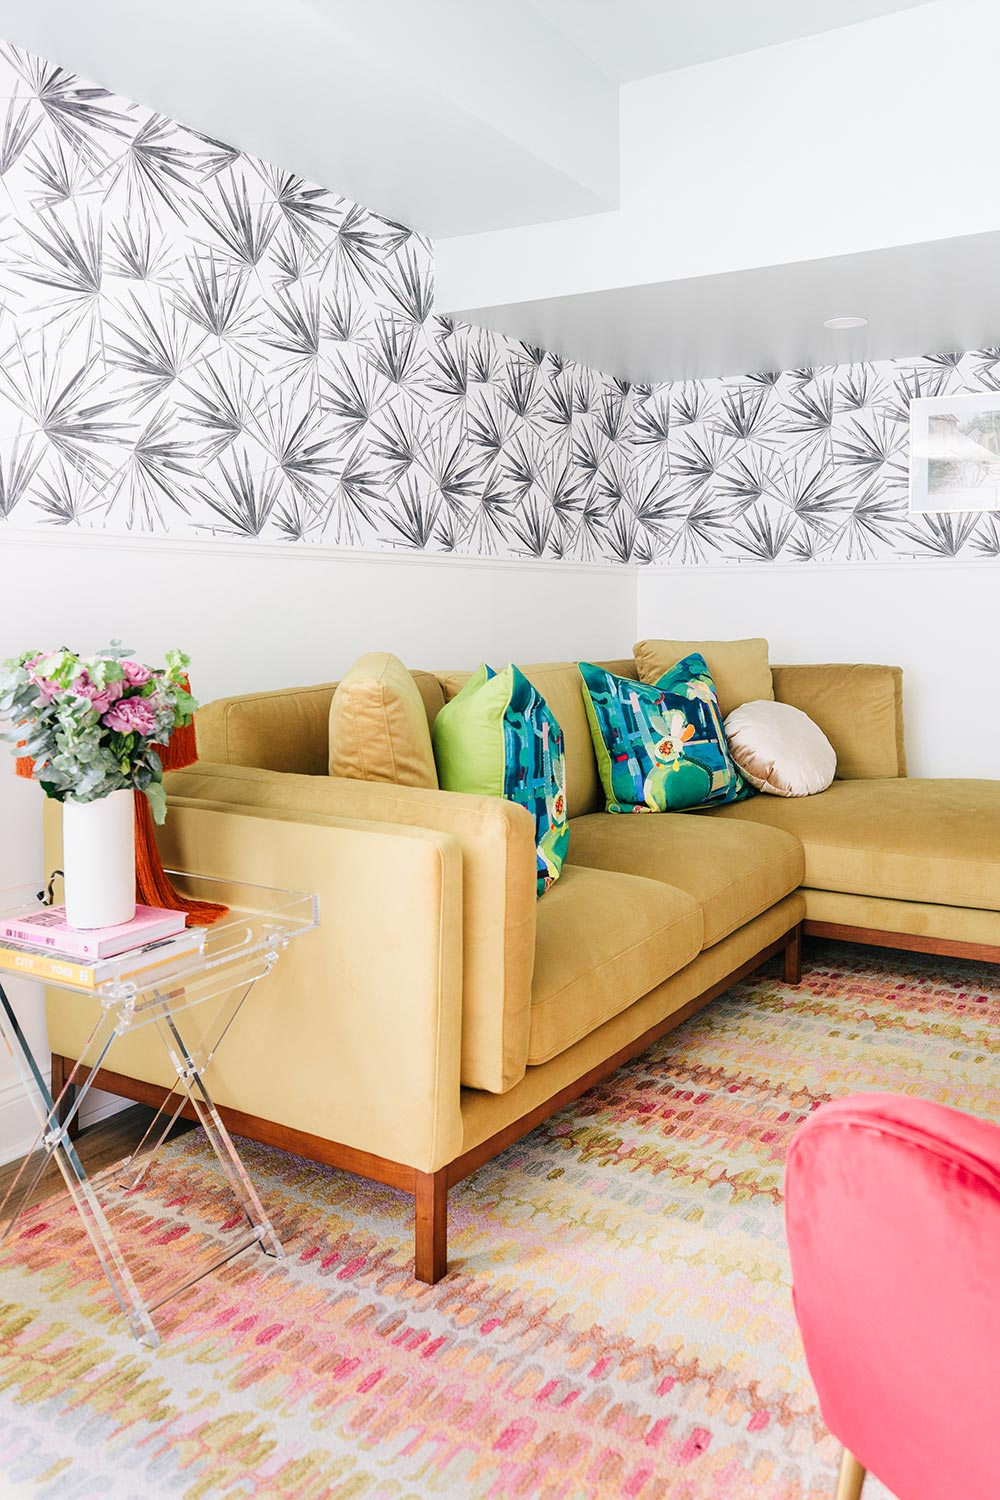 Tropical DIY interior project using black and white wallpaper design